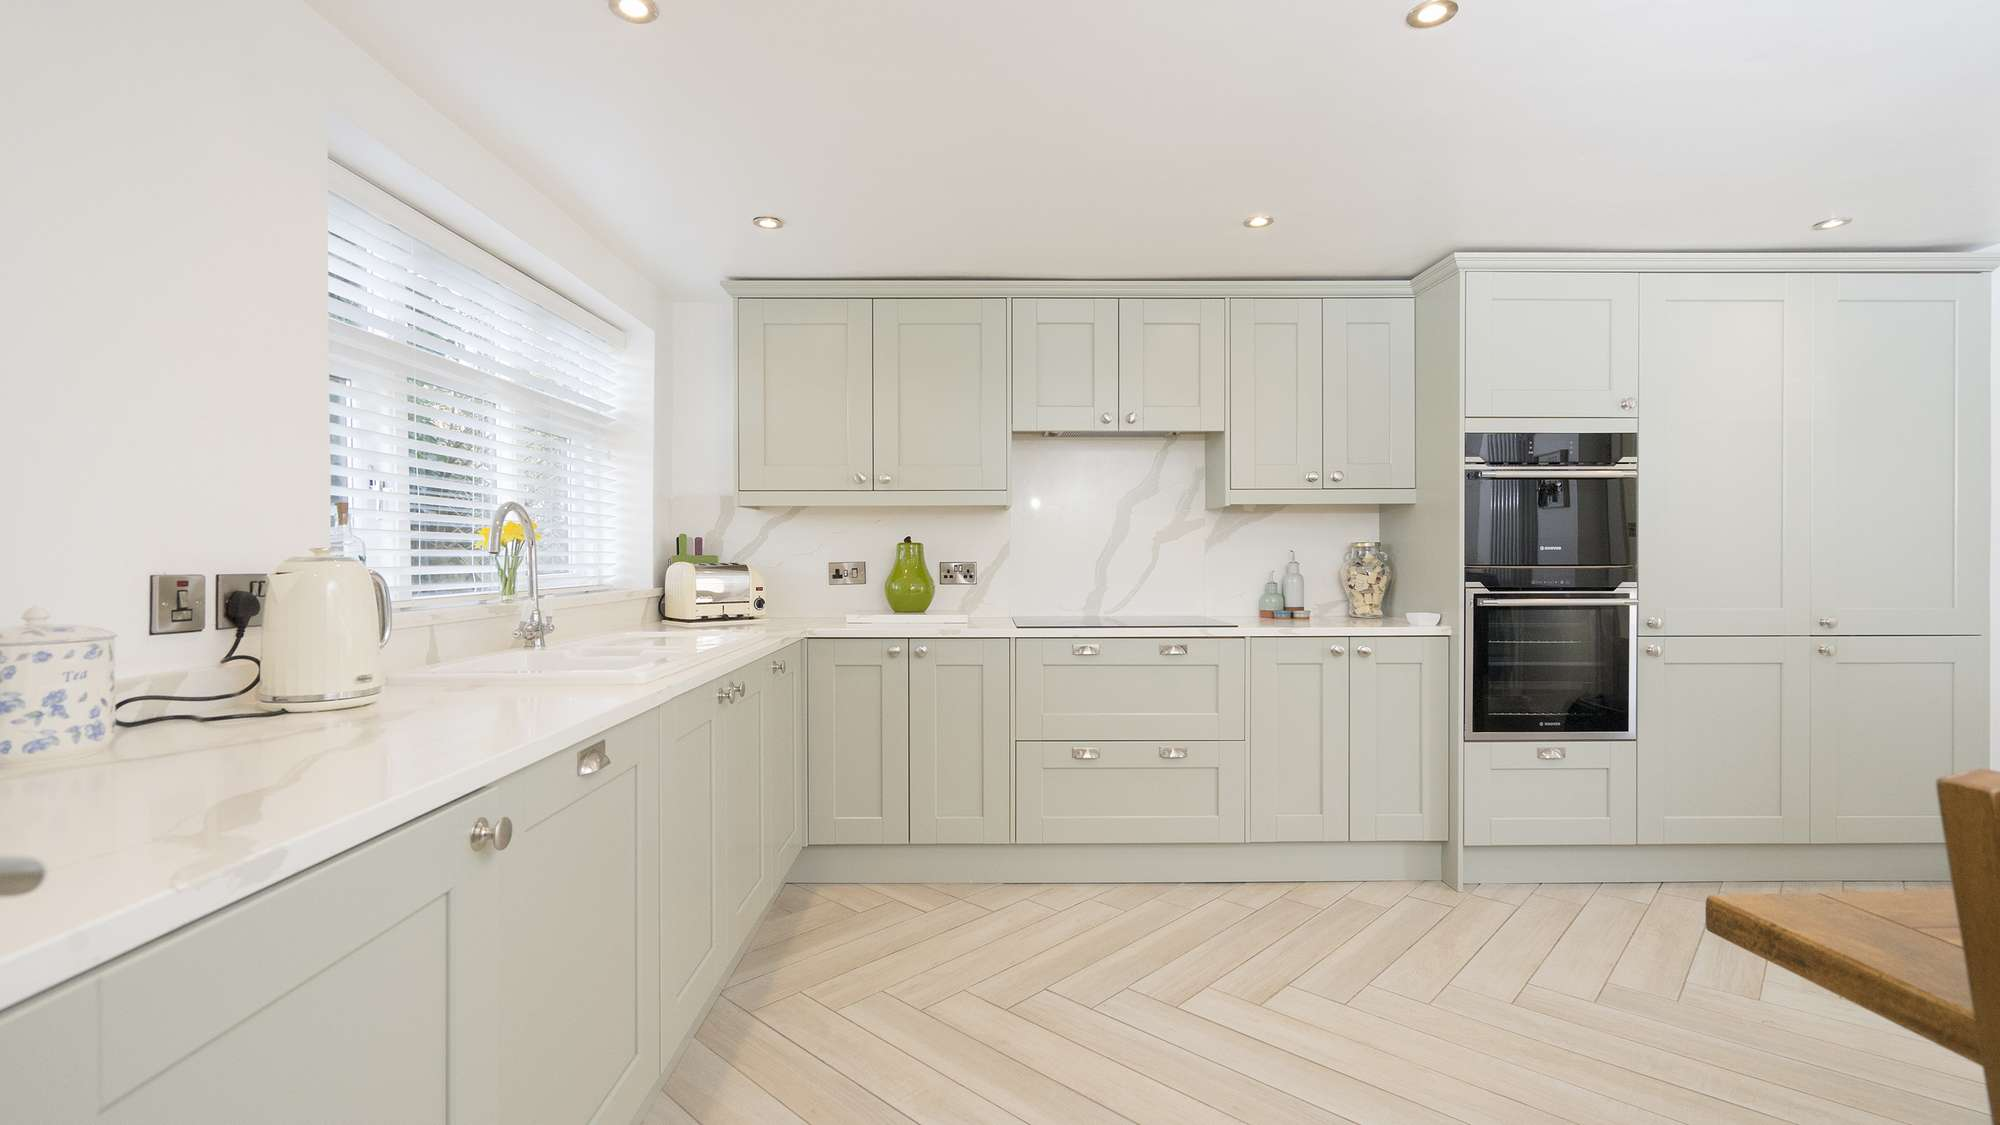 Alternative view of this shaker kitchen, all appliances are integrated and therefore mostly hidden from sight apart from the ovens which can be seen.